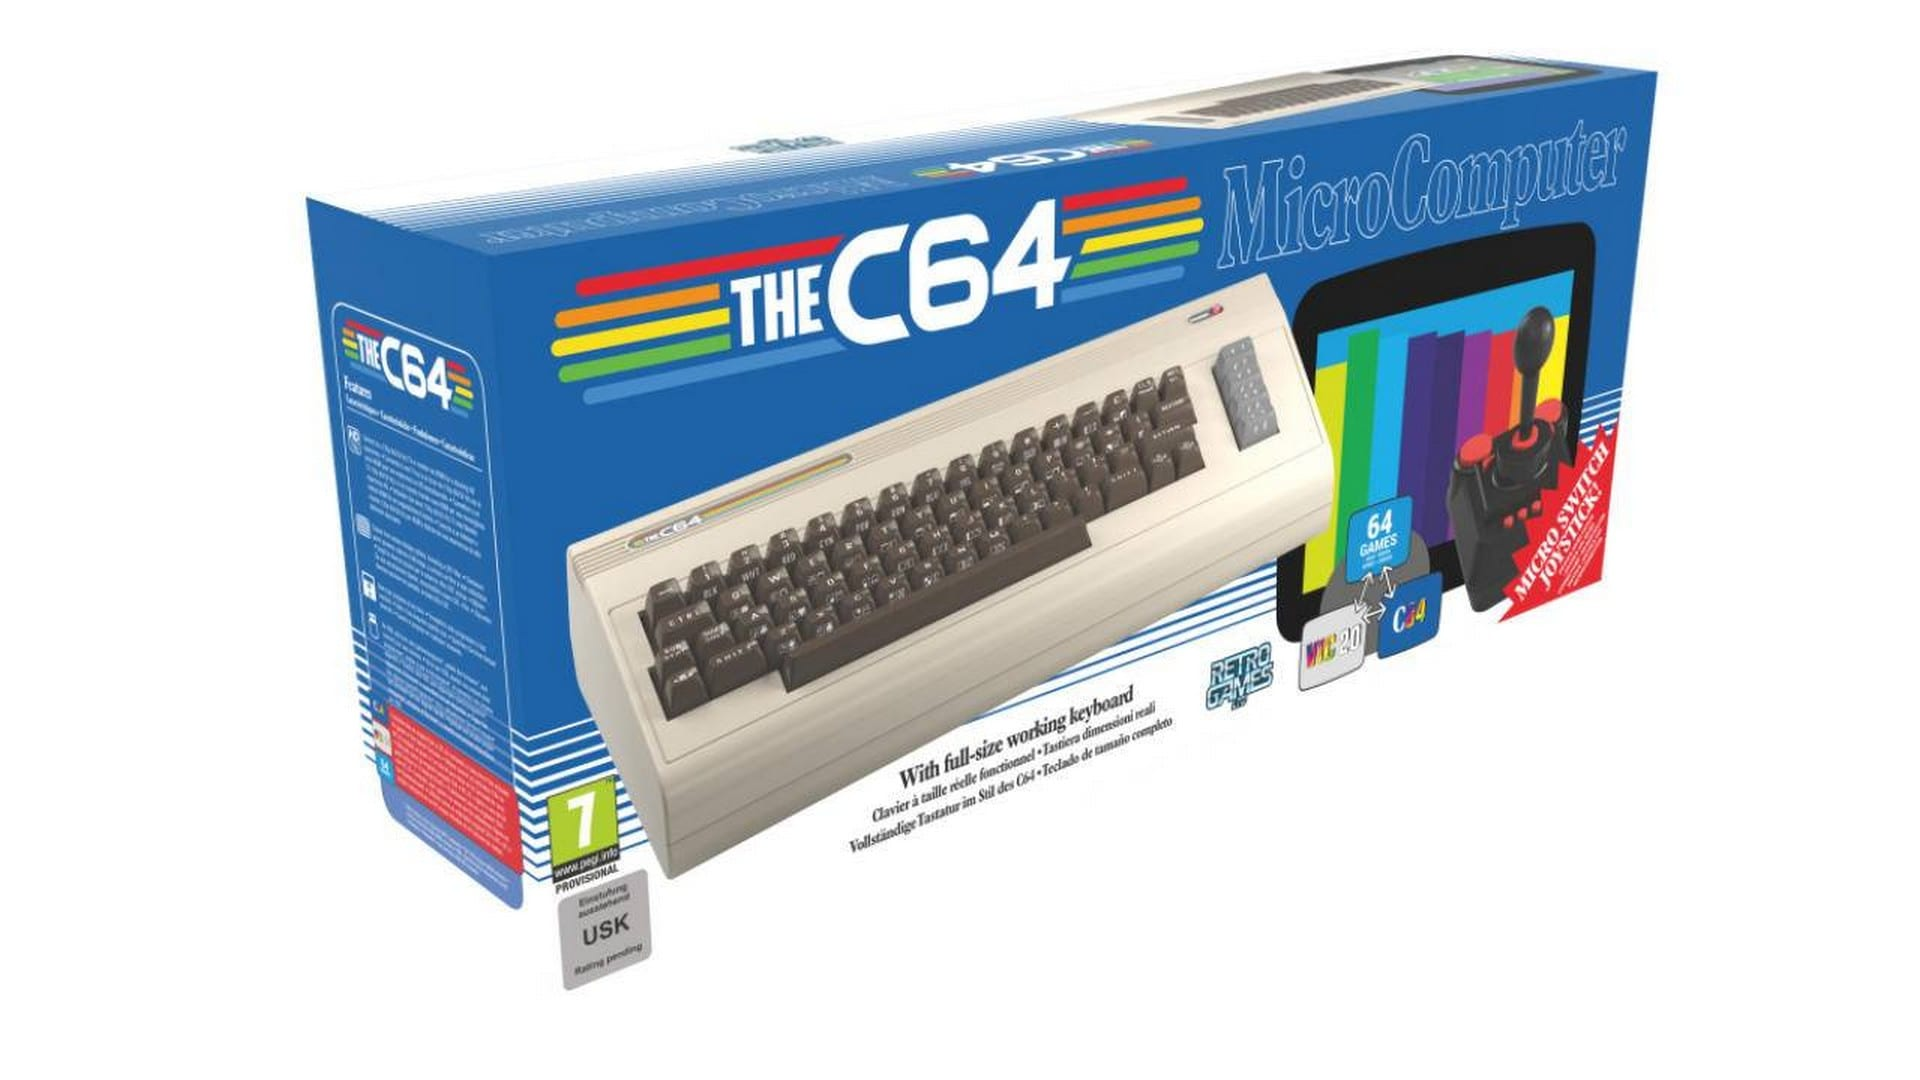 THEC64 Is In Stores Now